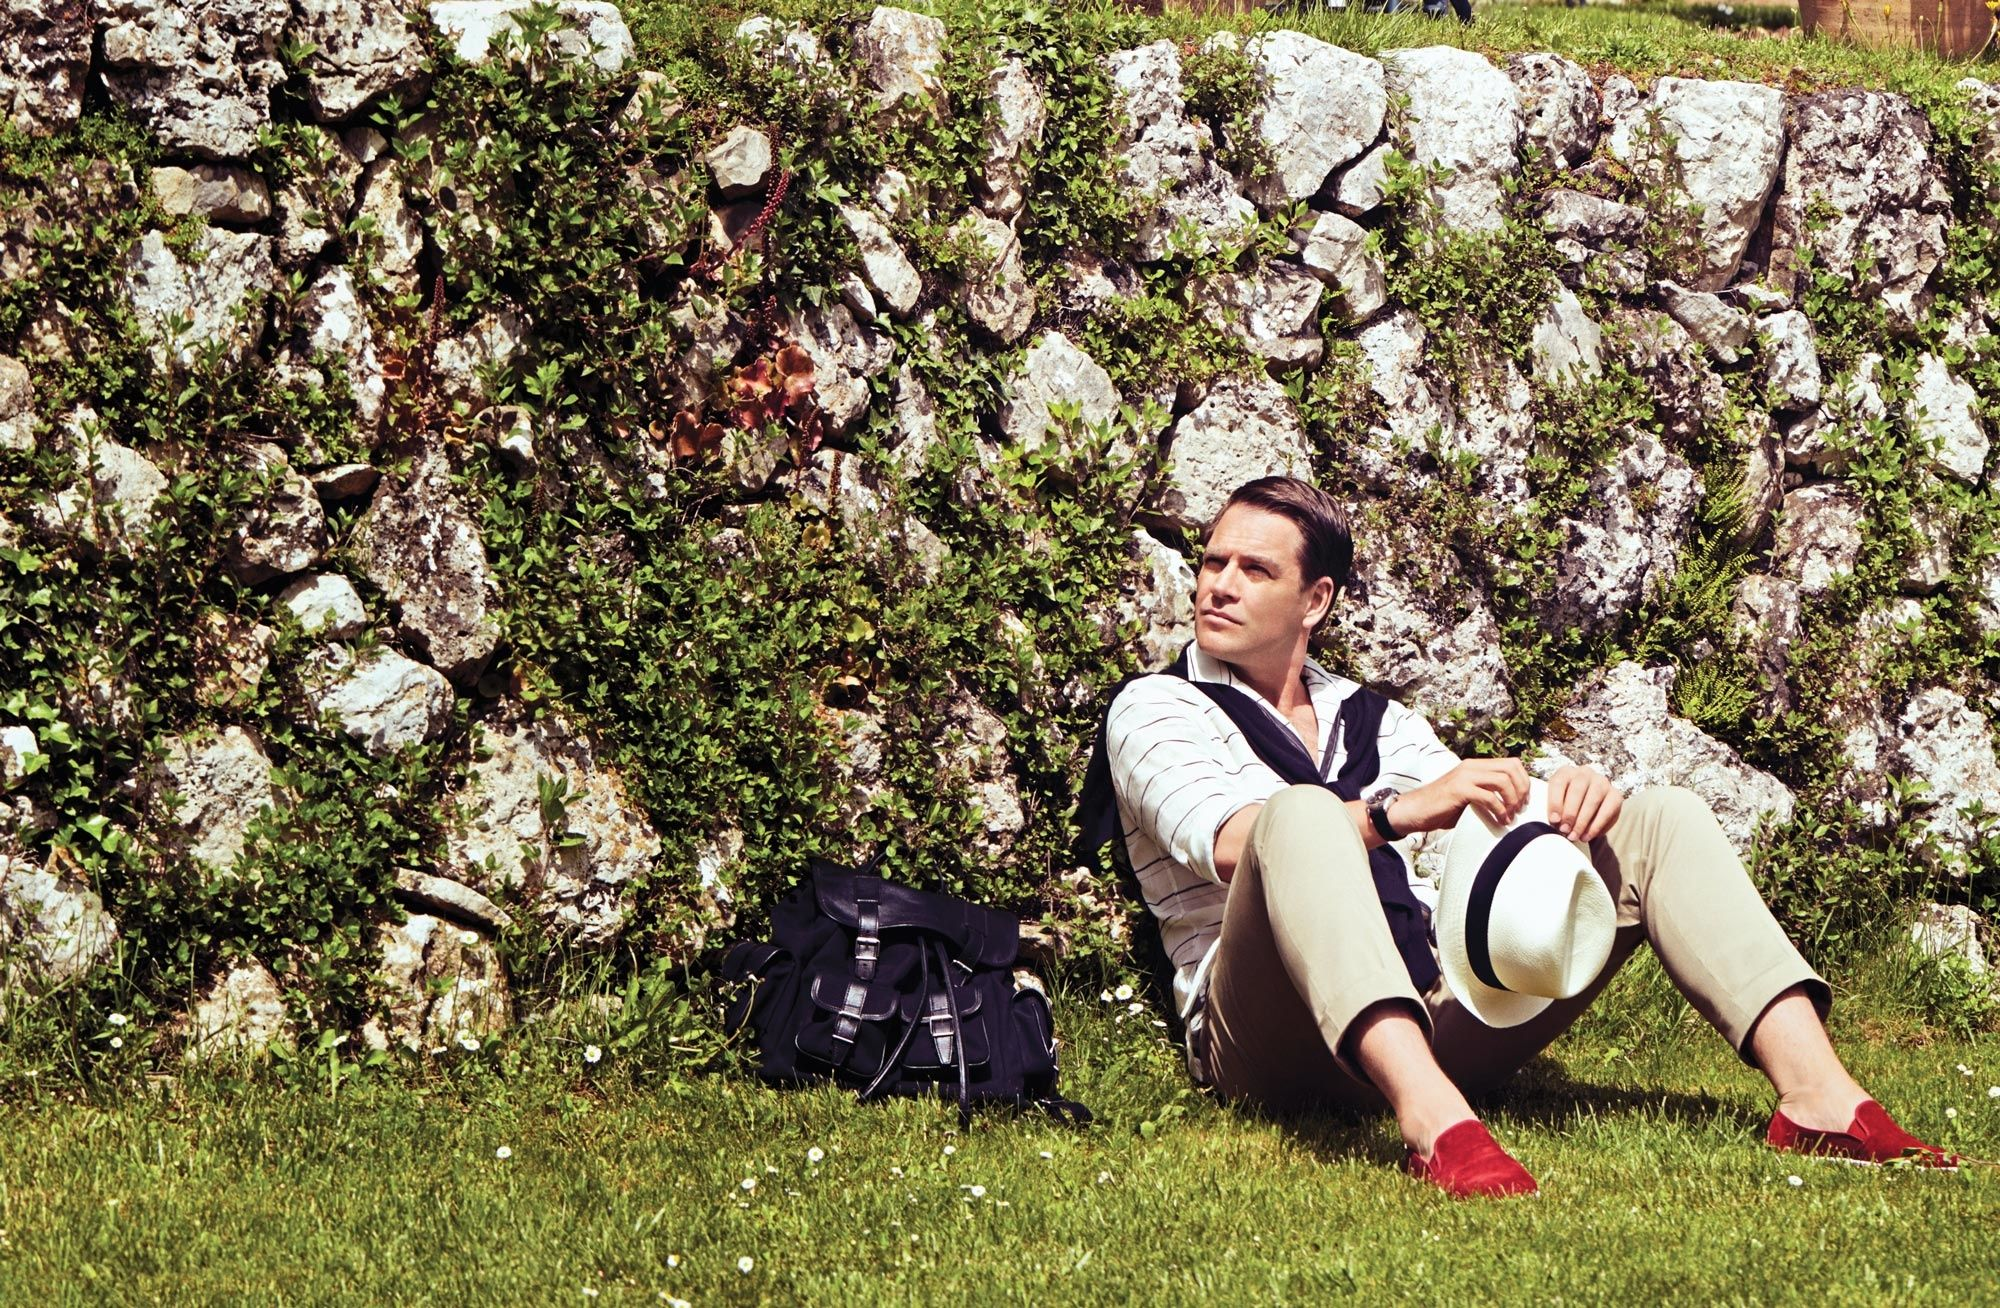 Michael Weatherly of Bull with red shoes sitting on grass